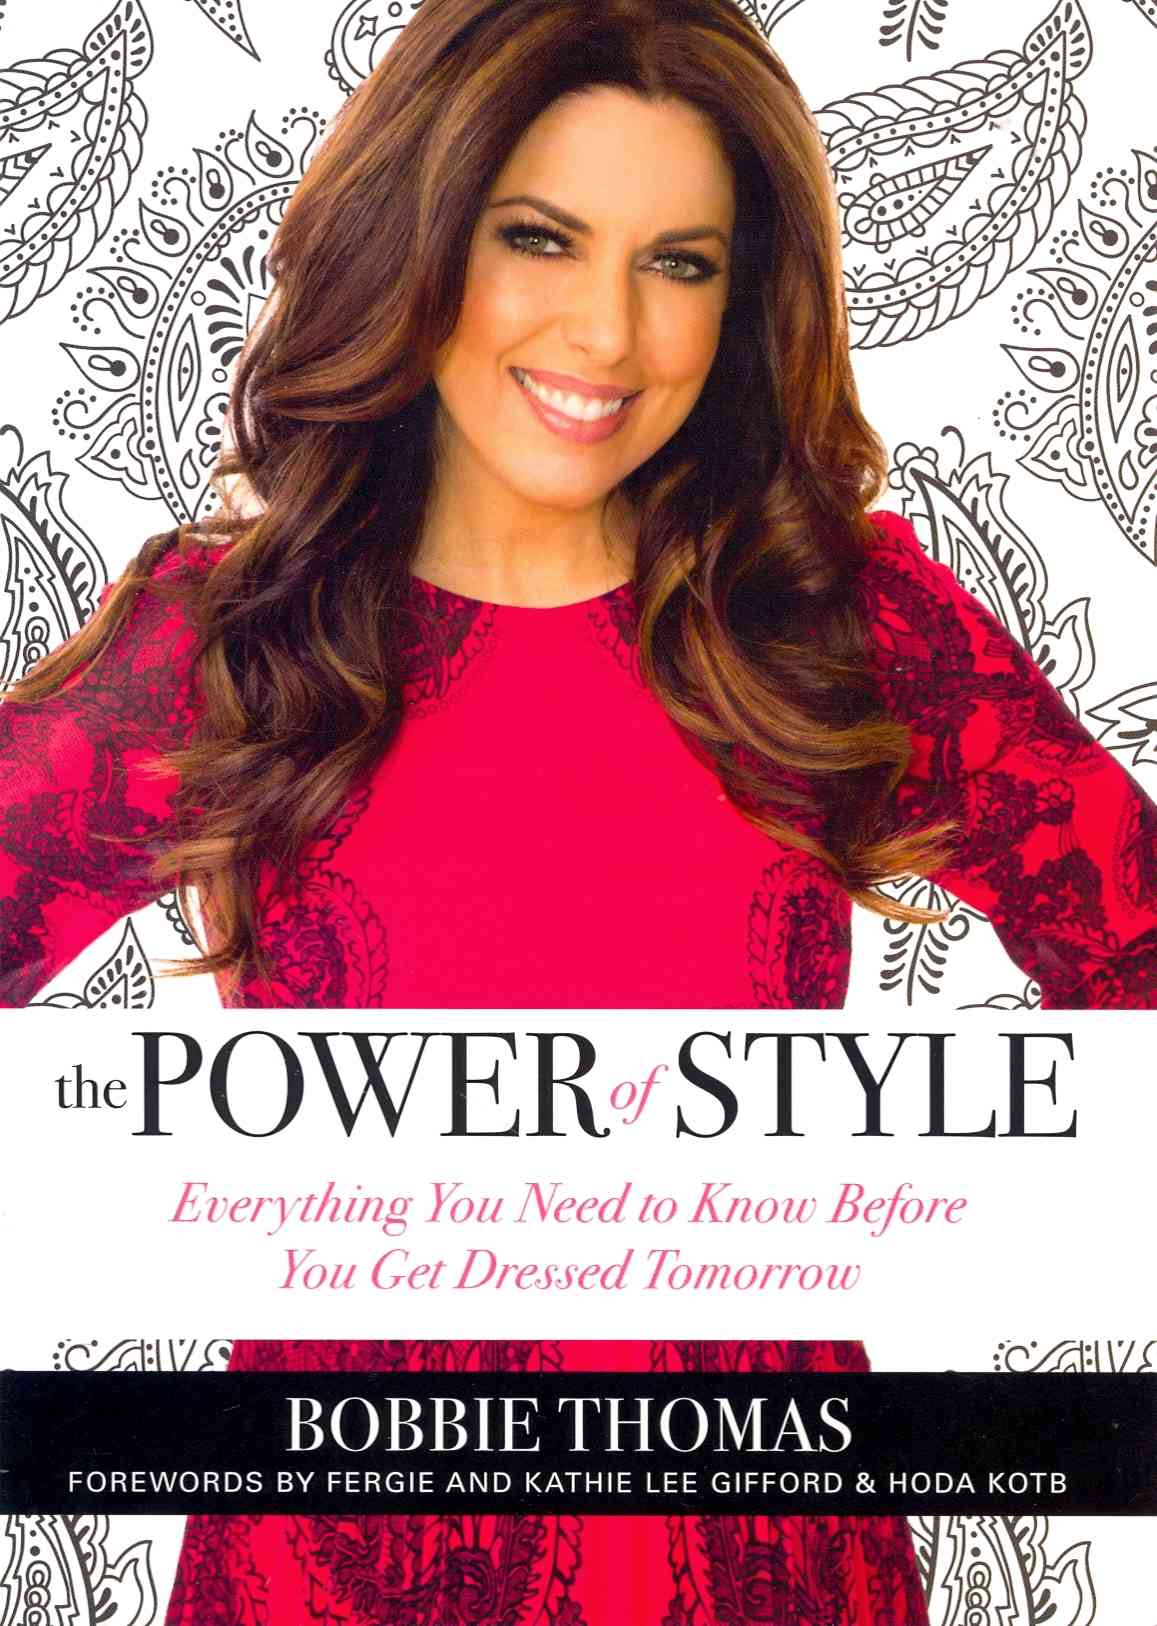 The Power of Style: Everything You Need to Know Before You Get Dressed Tomorrow (Hardcover)